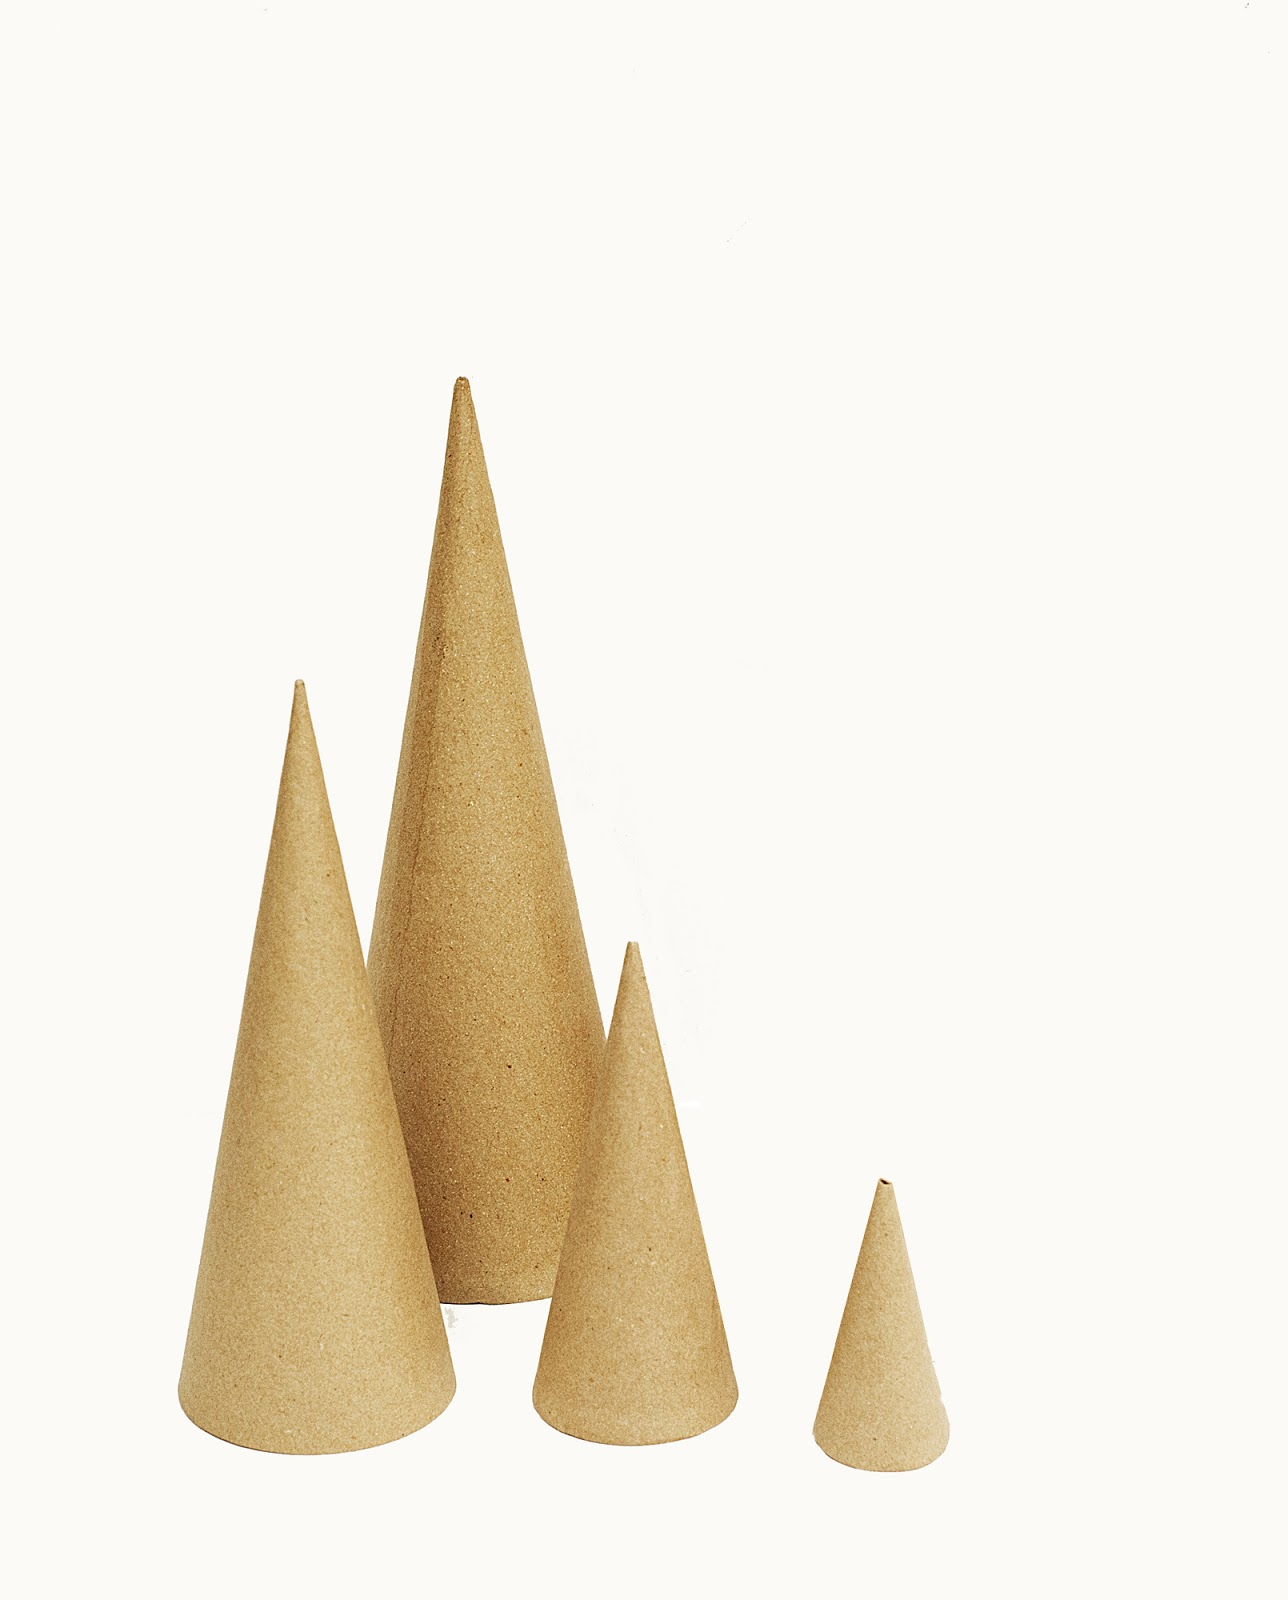 Ben franklin crafts and frame shop monroe wa how to for Cardboard cones for crafts